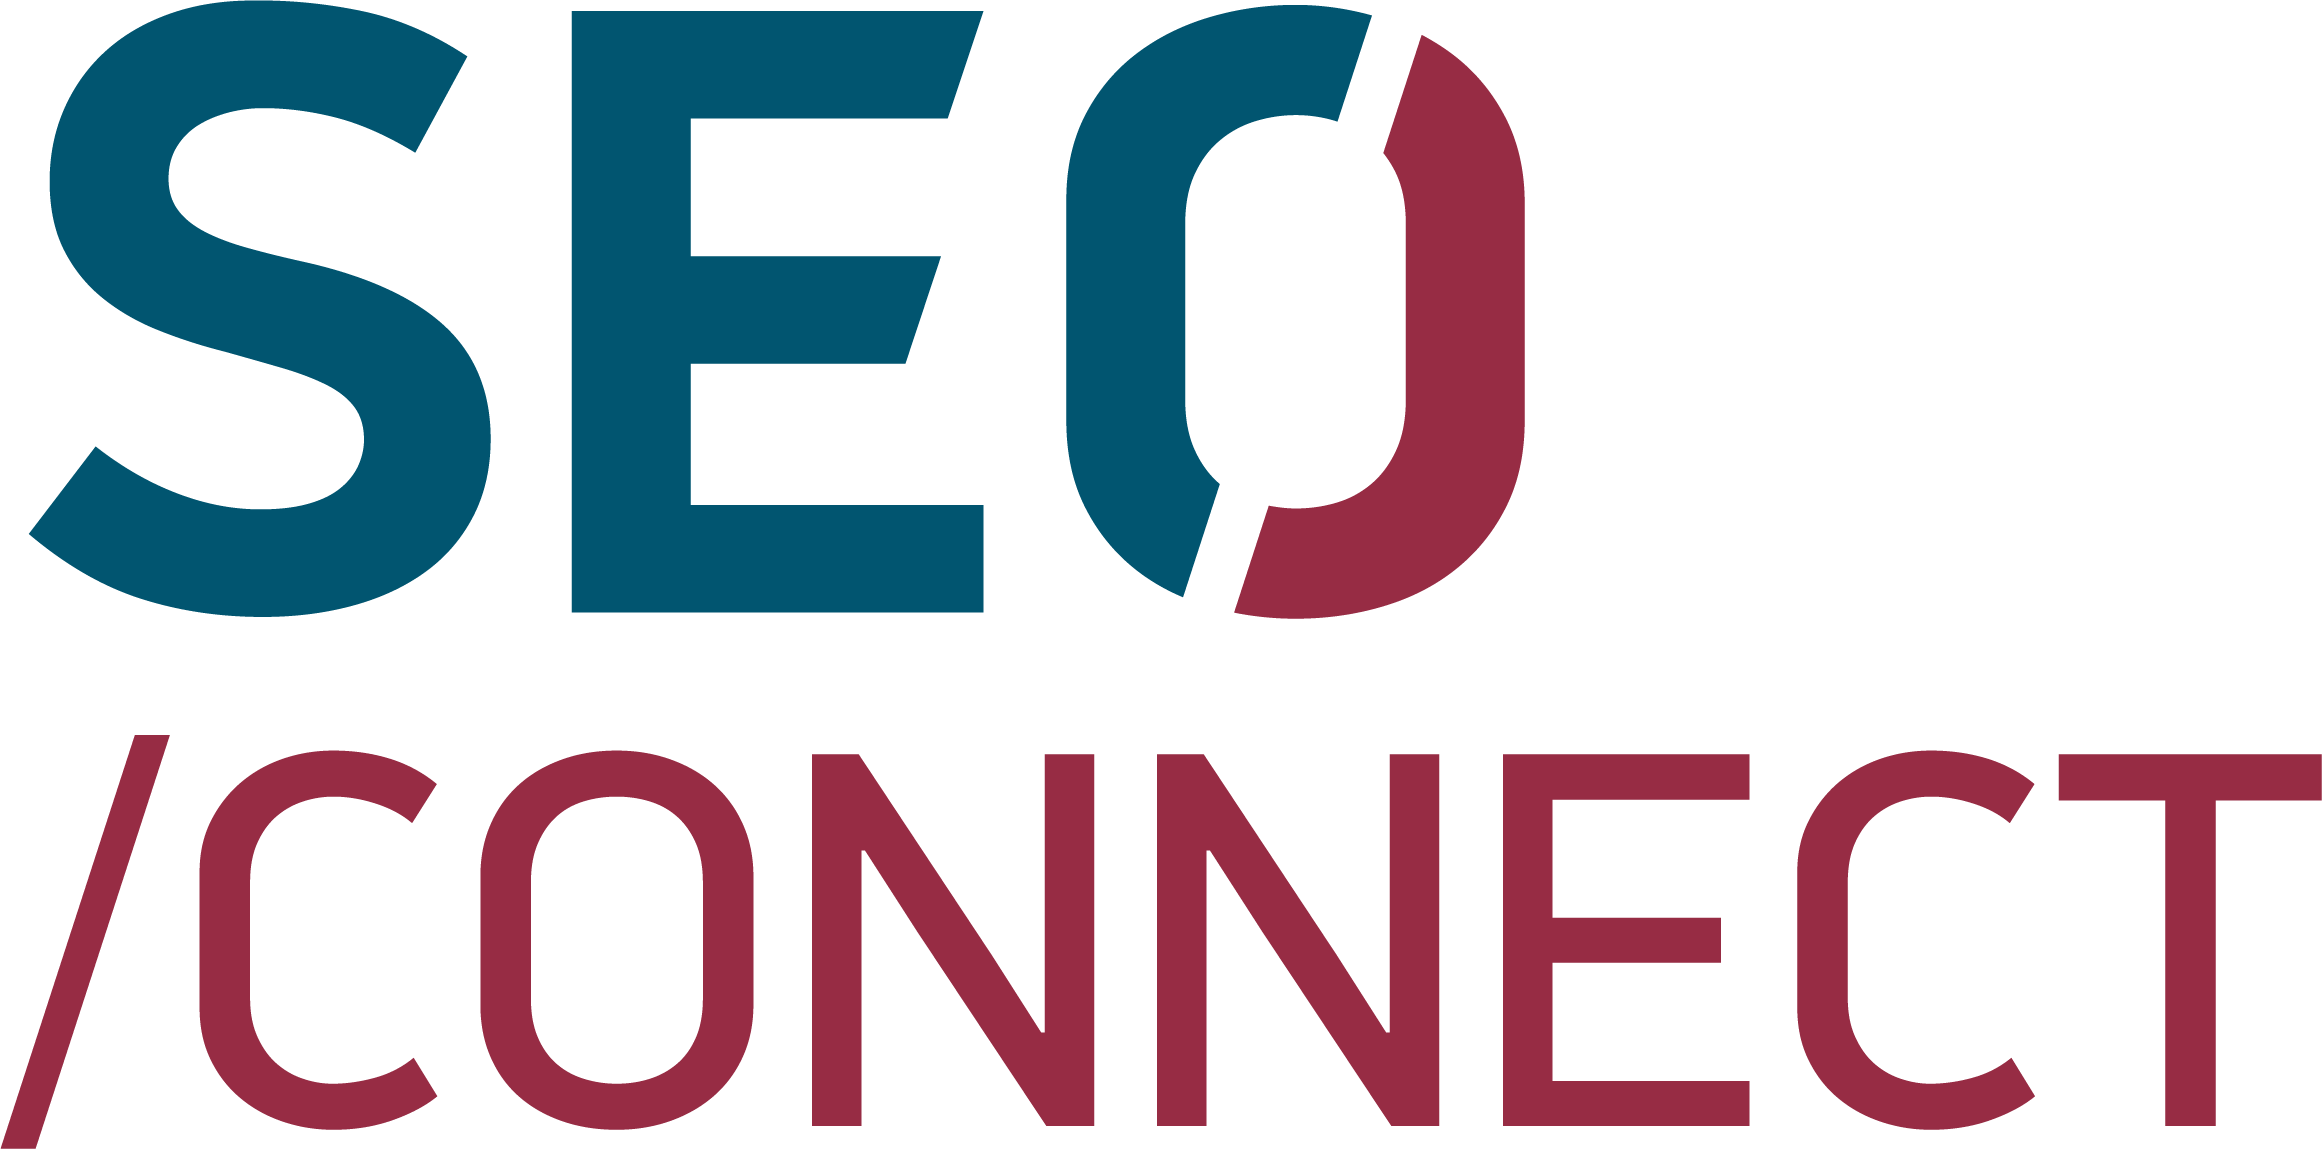 Logo image for SEO Connect